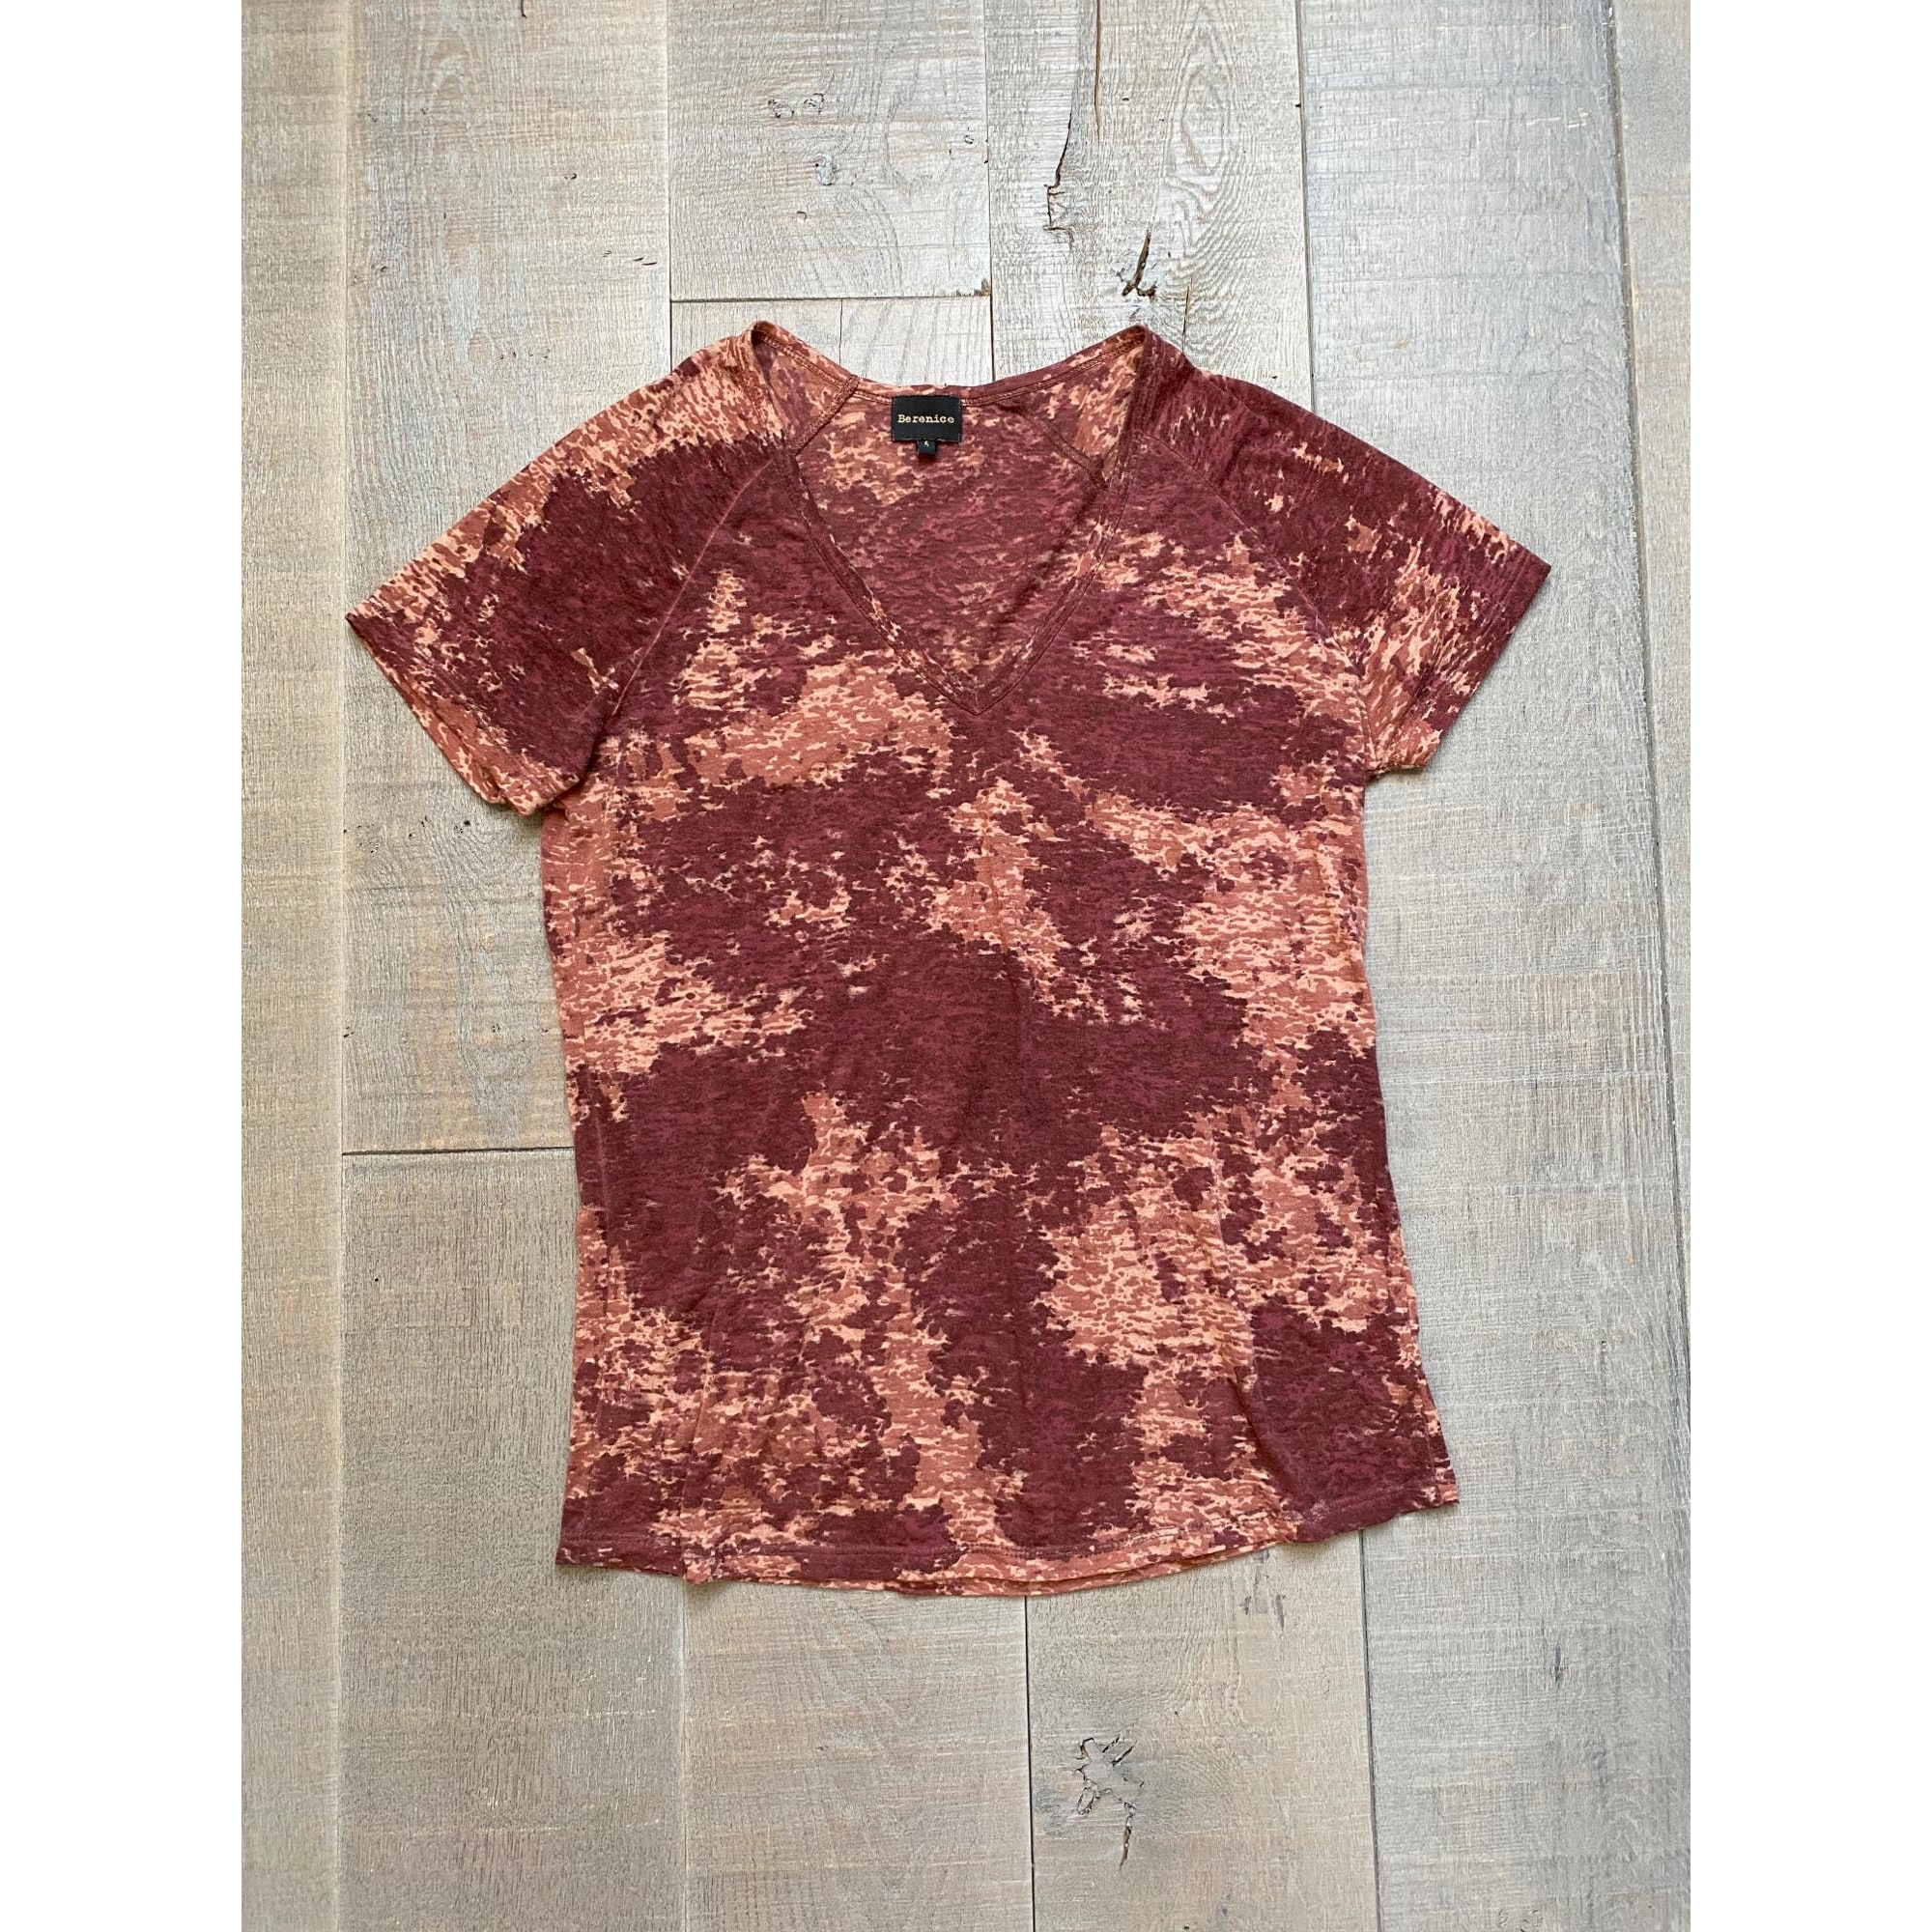 Top, tee-shirt BERENICE Rouge, bordeaux